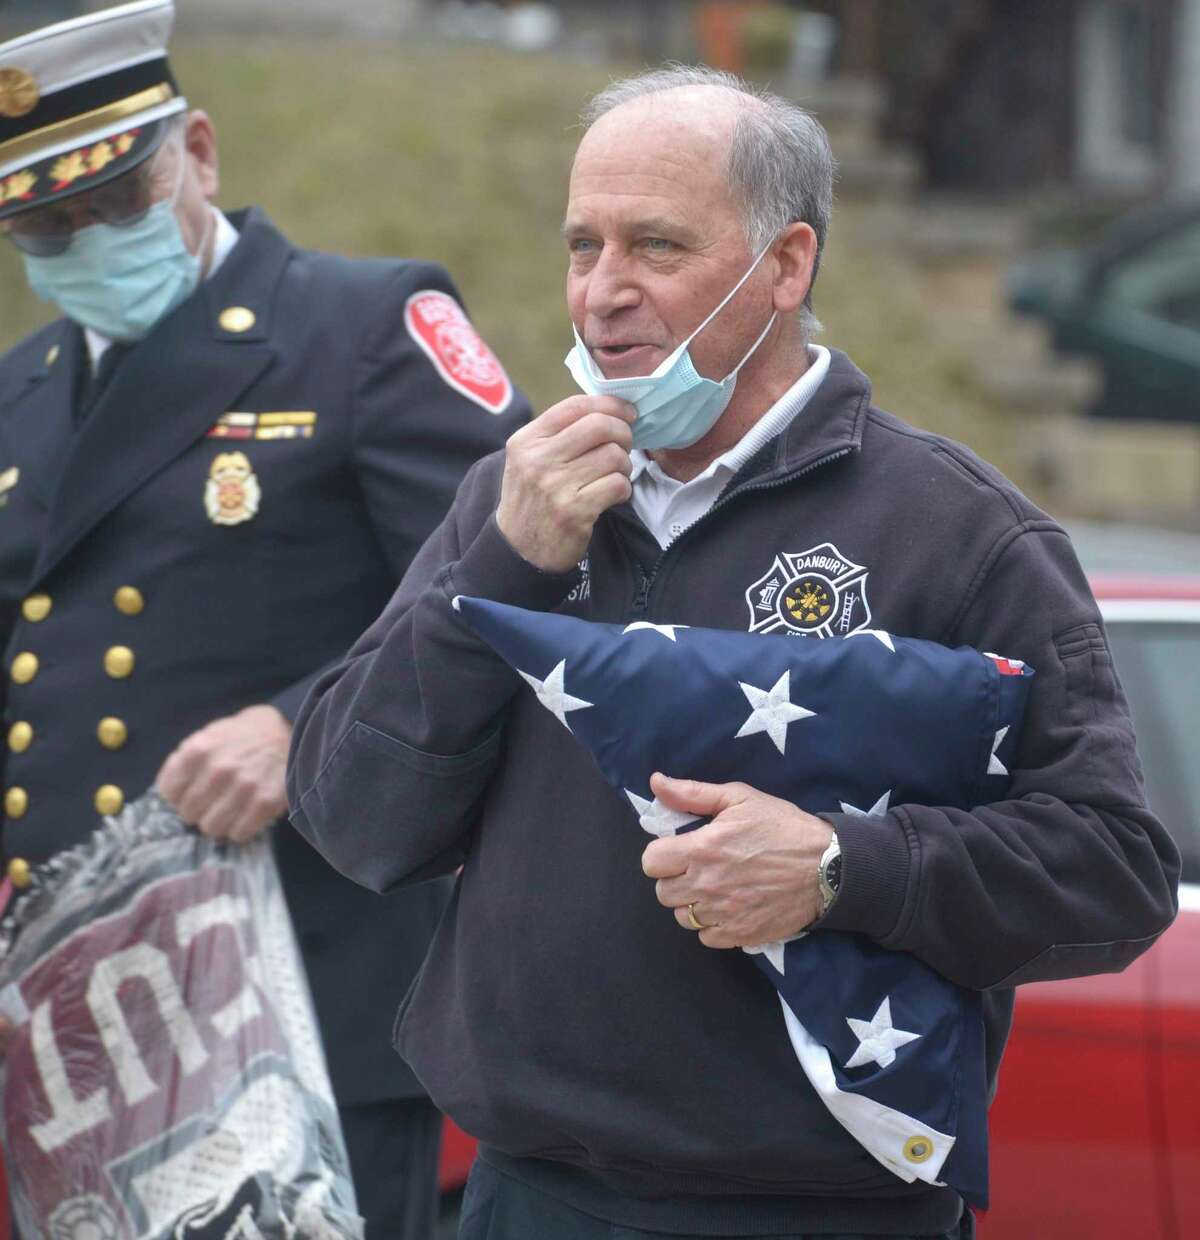 Danbury Fire Department Acting Fire Chief Mark Omasta speaks to the crowd that gather for his flag ceremony, a department tradition, on his last day on the job. Wednesday afternoon, January 14, 2021, in Danbury, Conn.